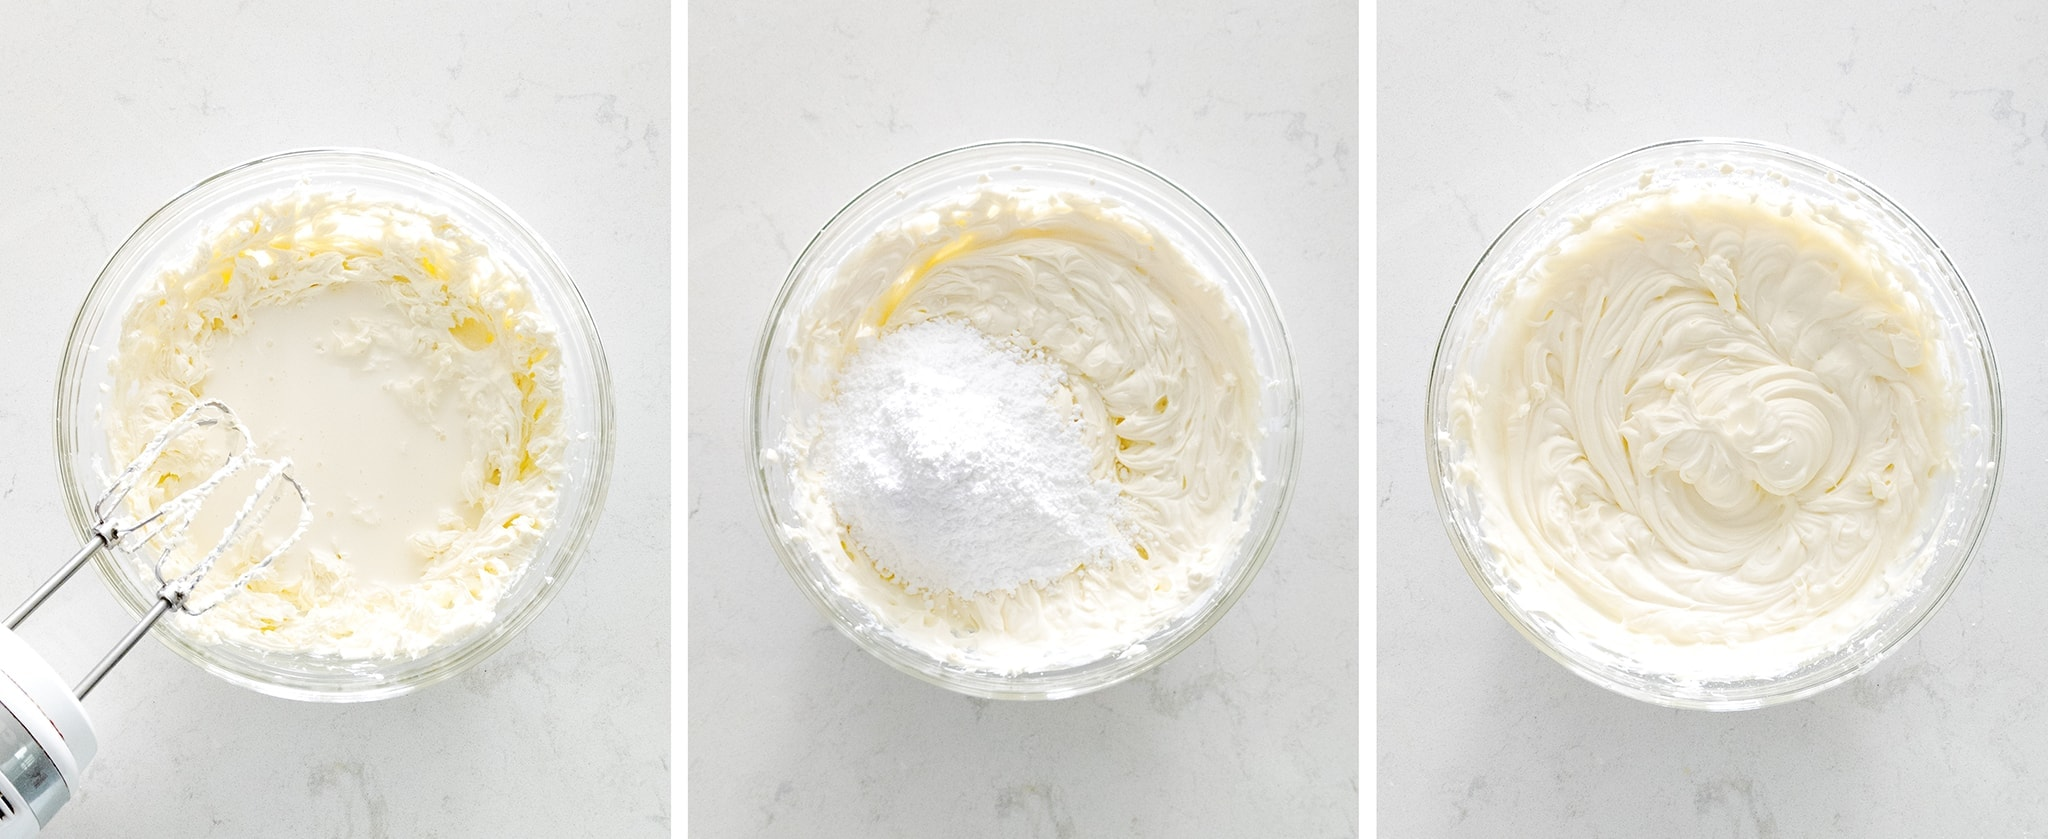 Mixing cream cheese frosting in a bowl